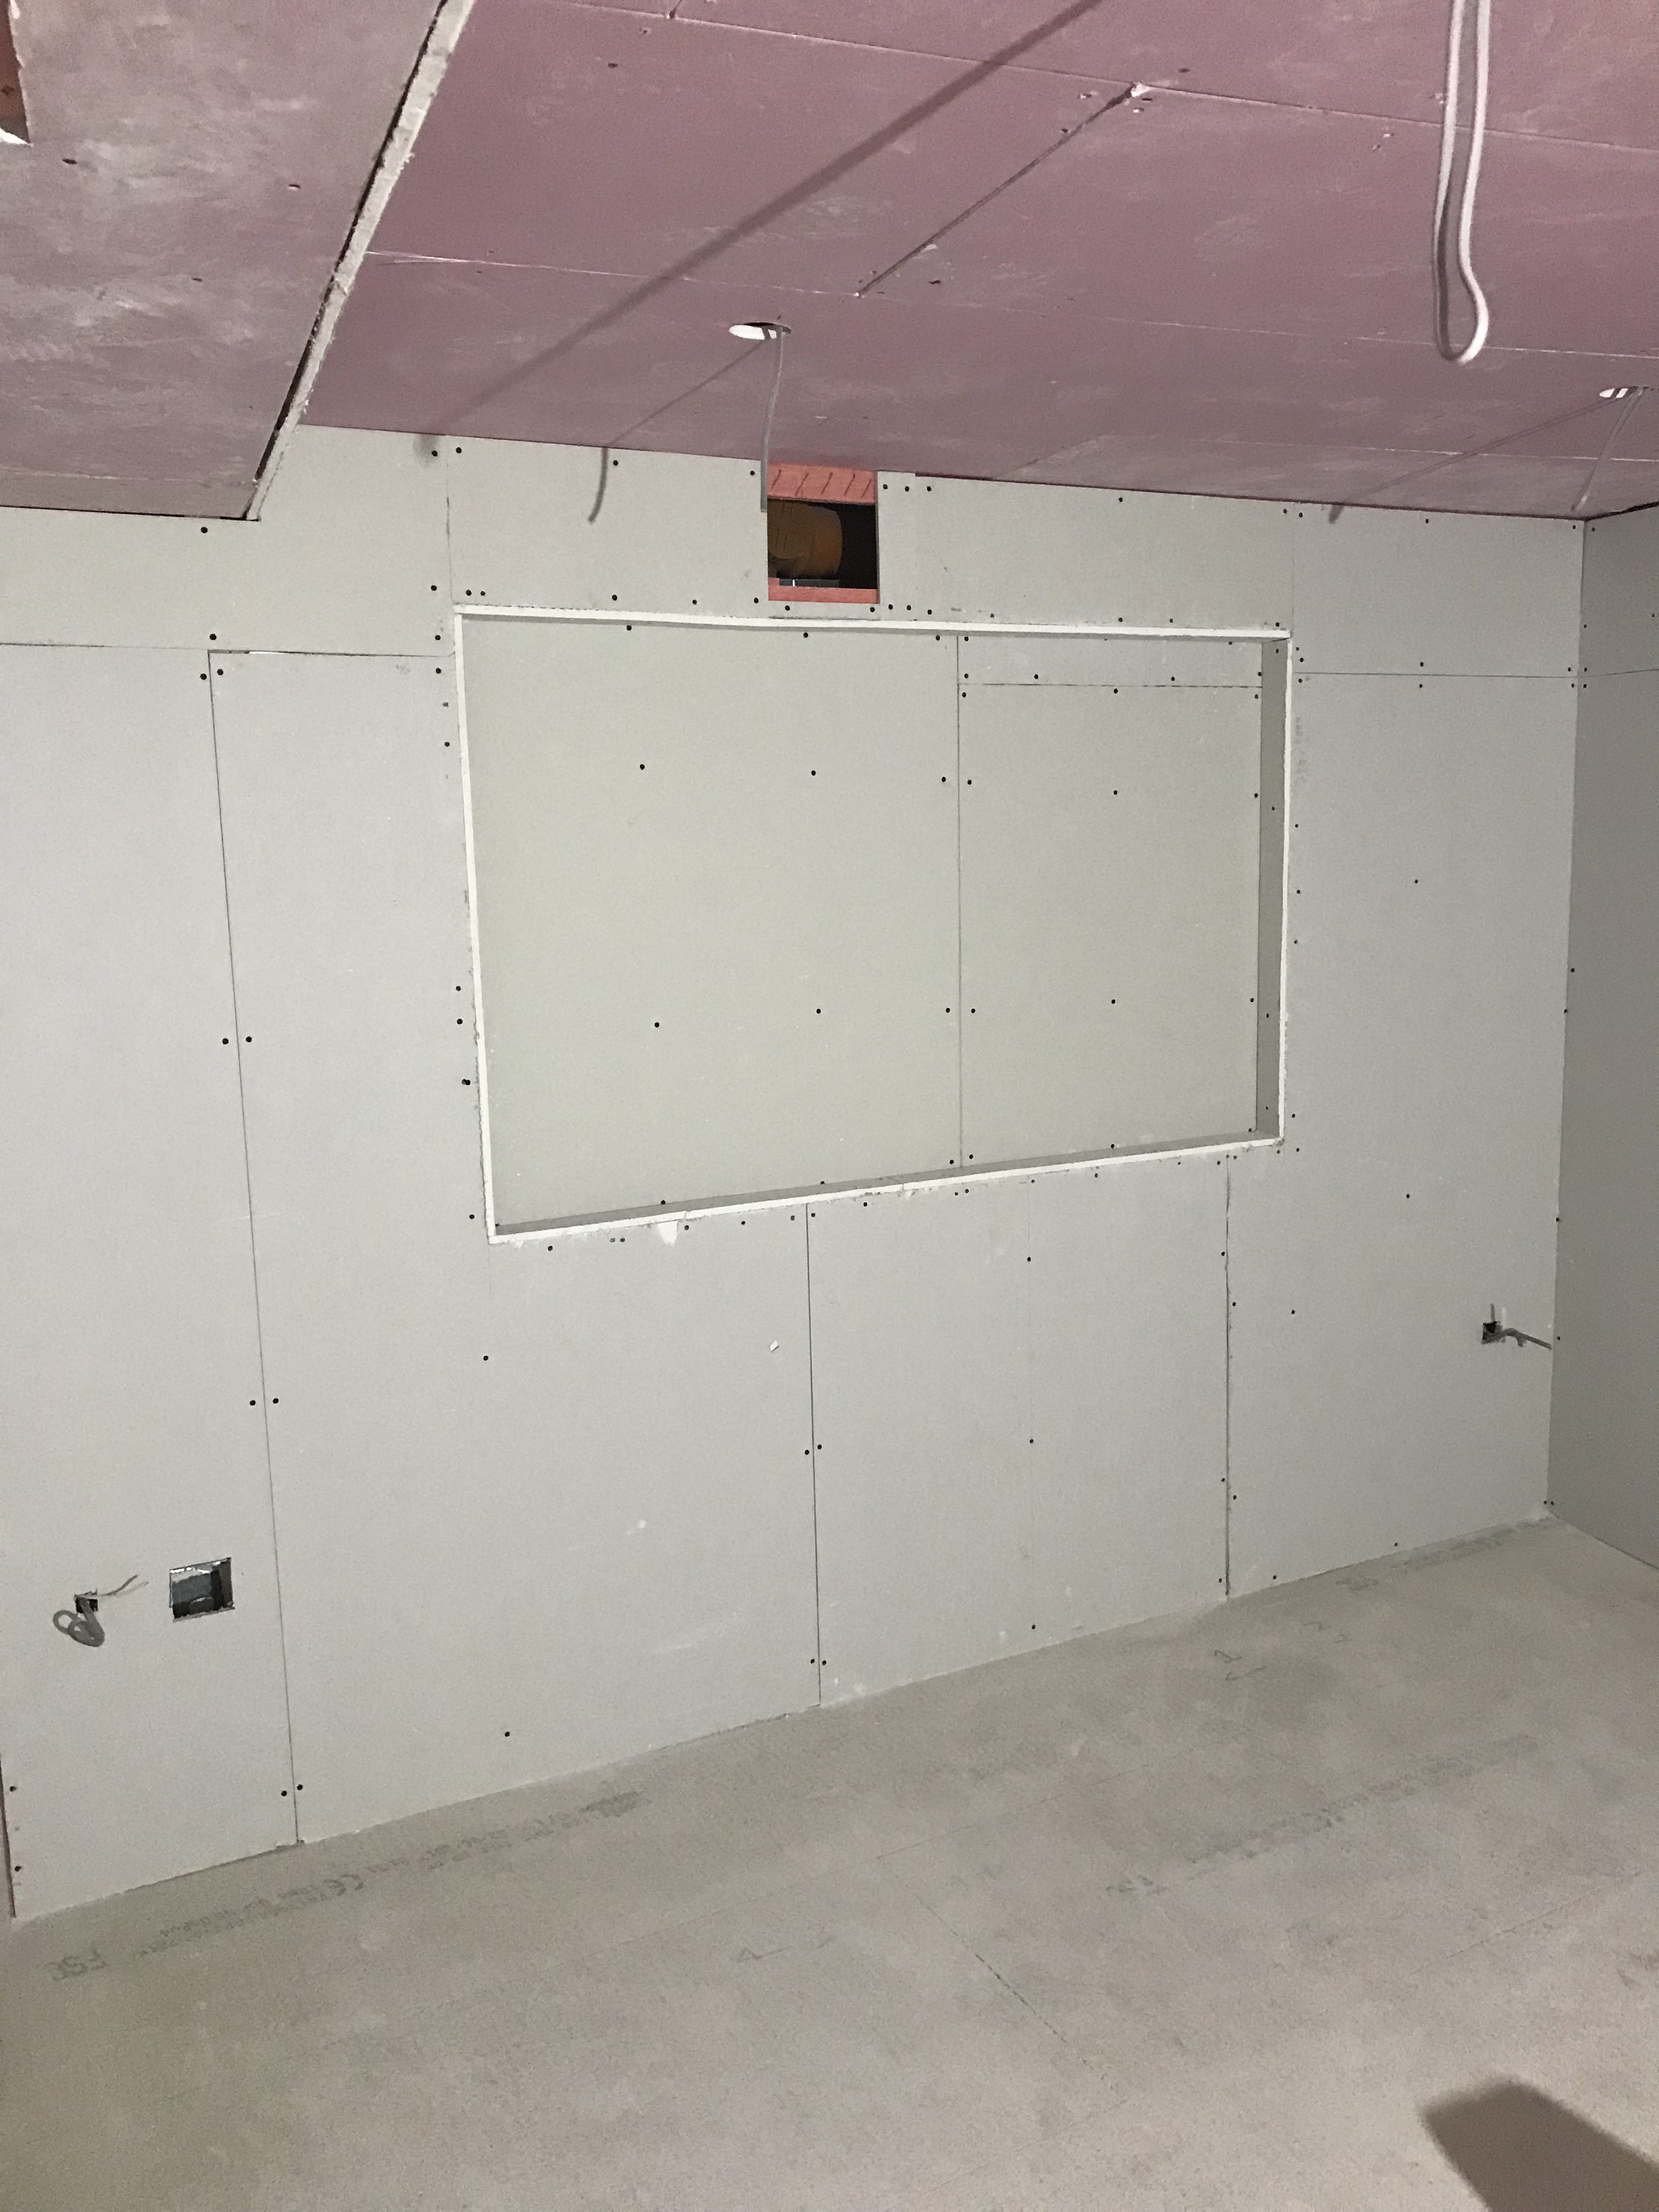 Set back in dry lining for TV